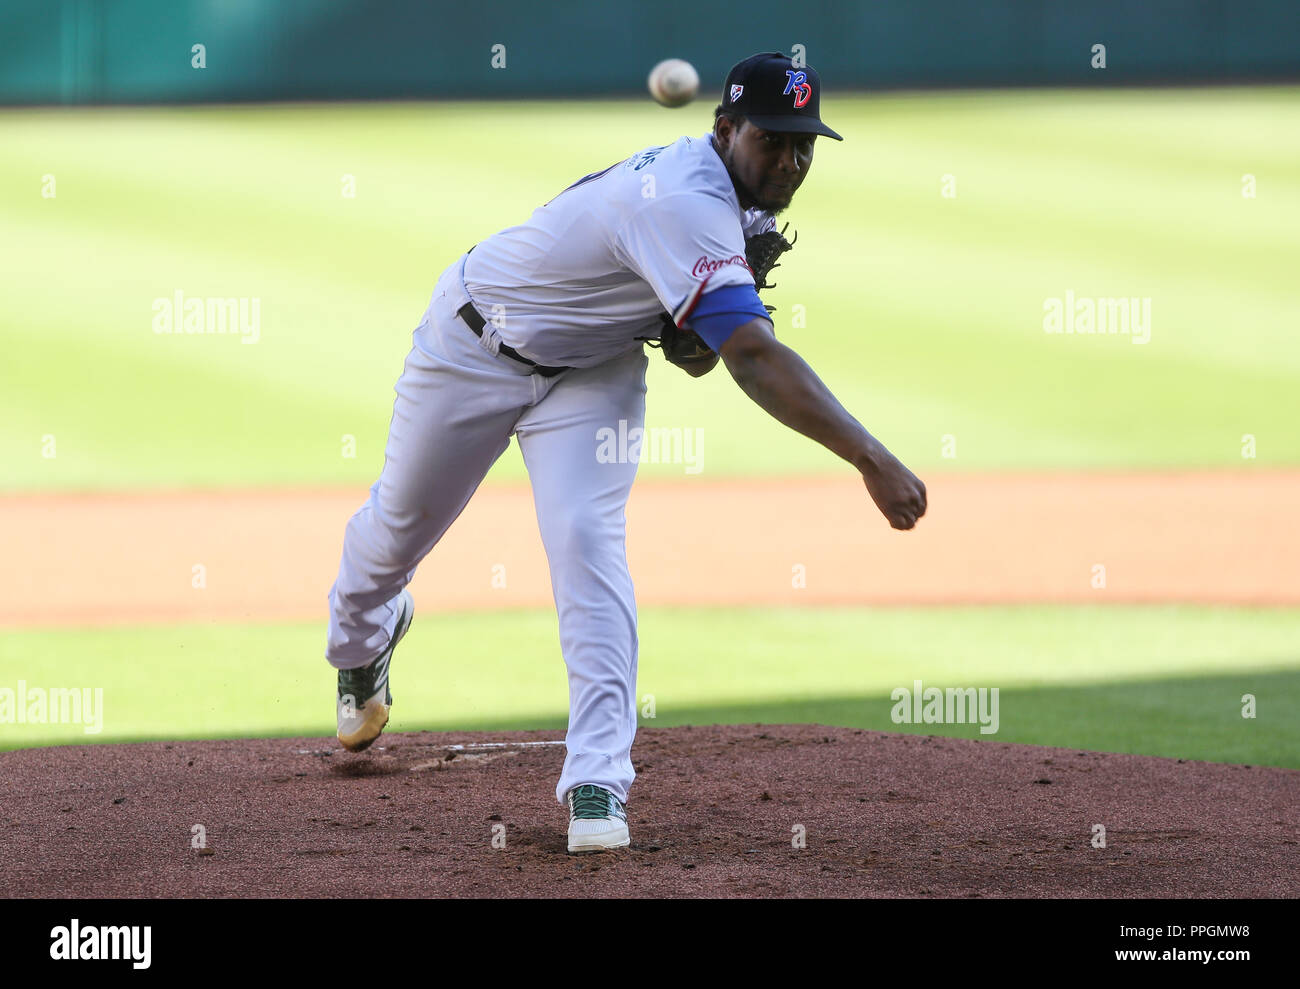 Initial pitcher of Tigres del Licey of Dominican Republic, Lázaro Blanco makes a pitch in the first inning, During the baseball game for the Caribb - Stock Image